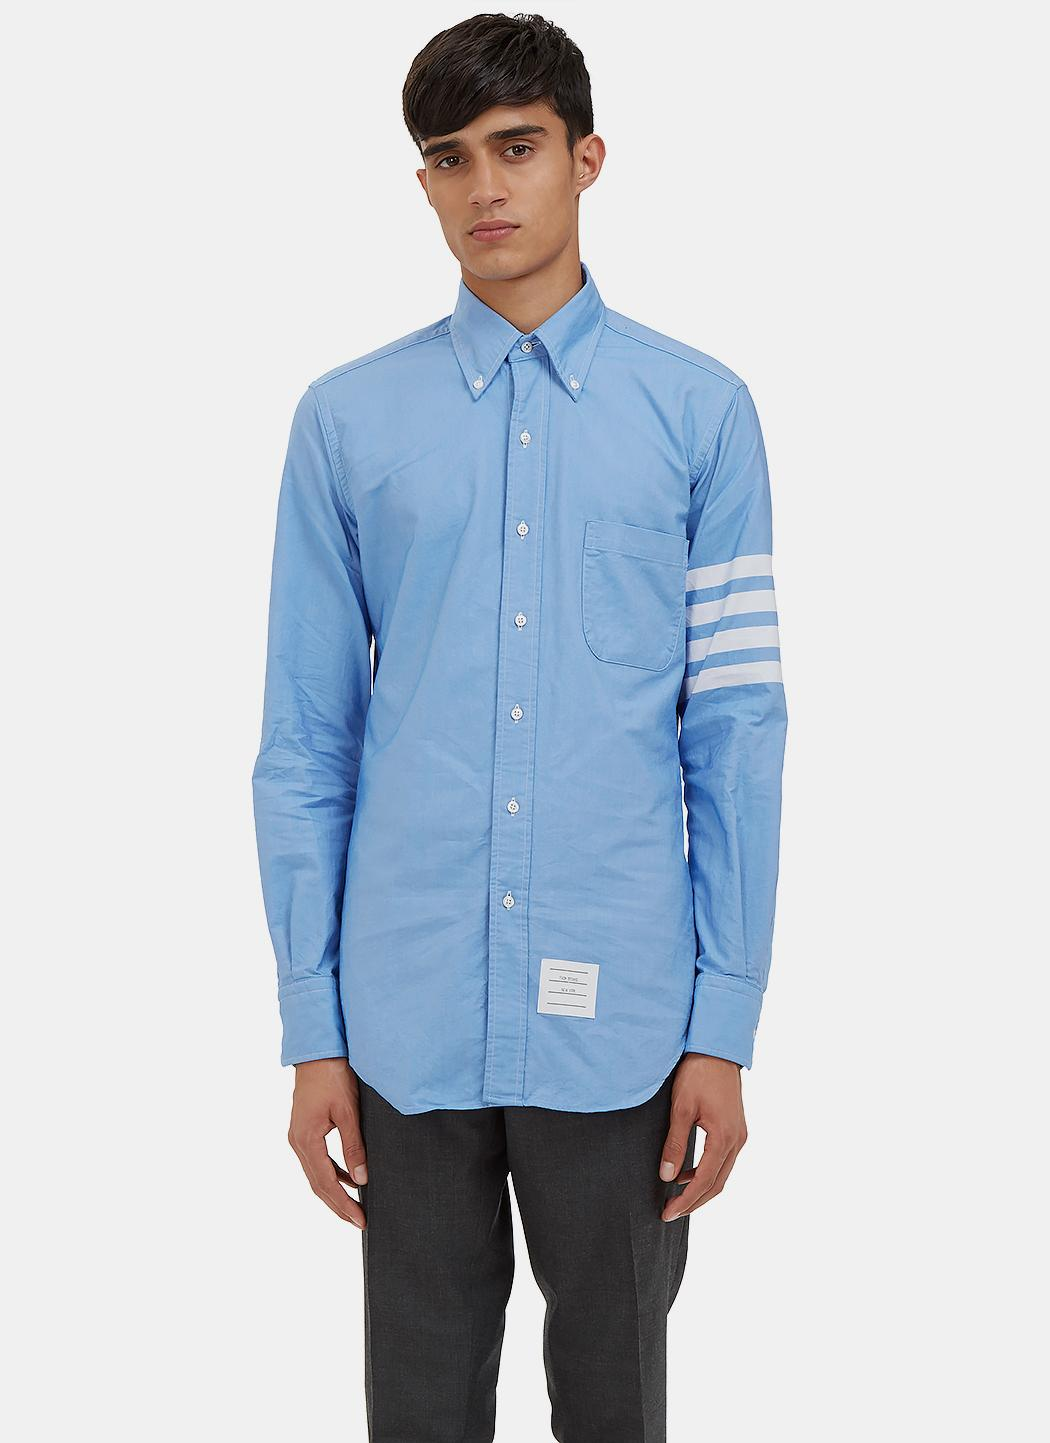 5451c28a661 Lyst - Thom Browne Men s 4 Bar Oxford Shirt In Blue in Blue for Men